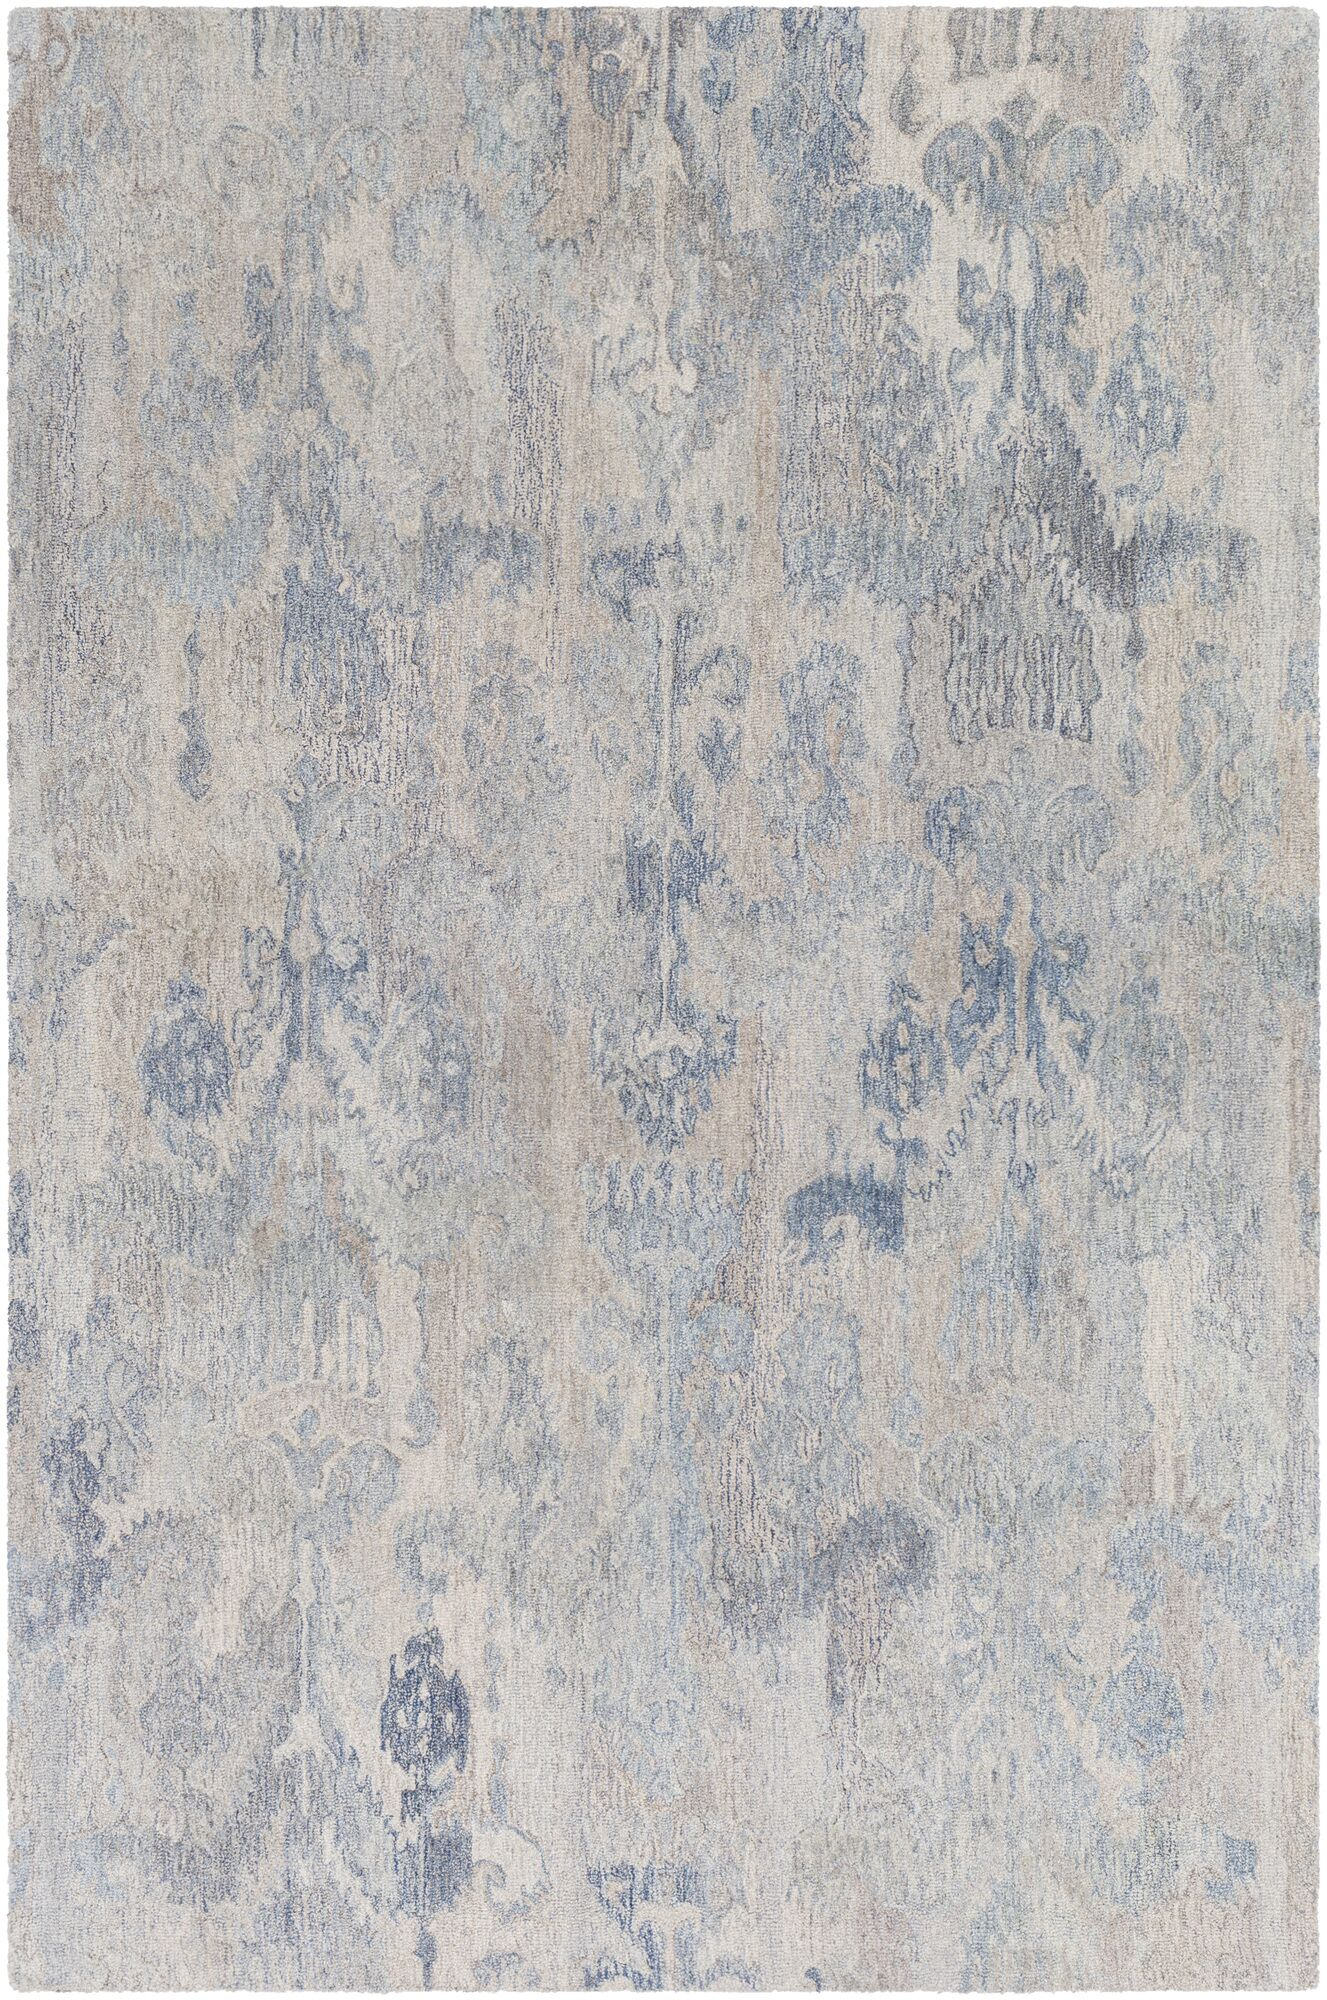 Eady Hand Hooked Wool Dark Blue/Ice Blue Area Rug Rug Size: Rectangle 8' x 10'